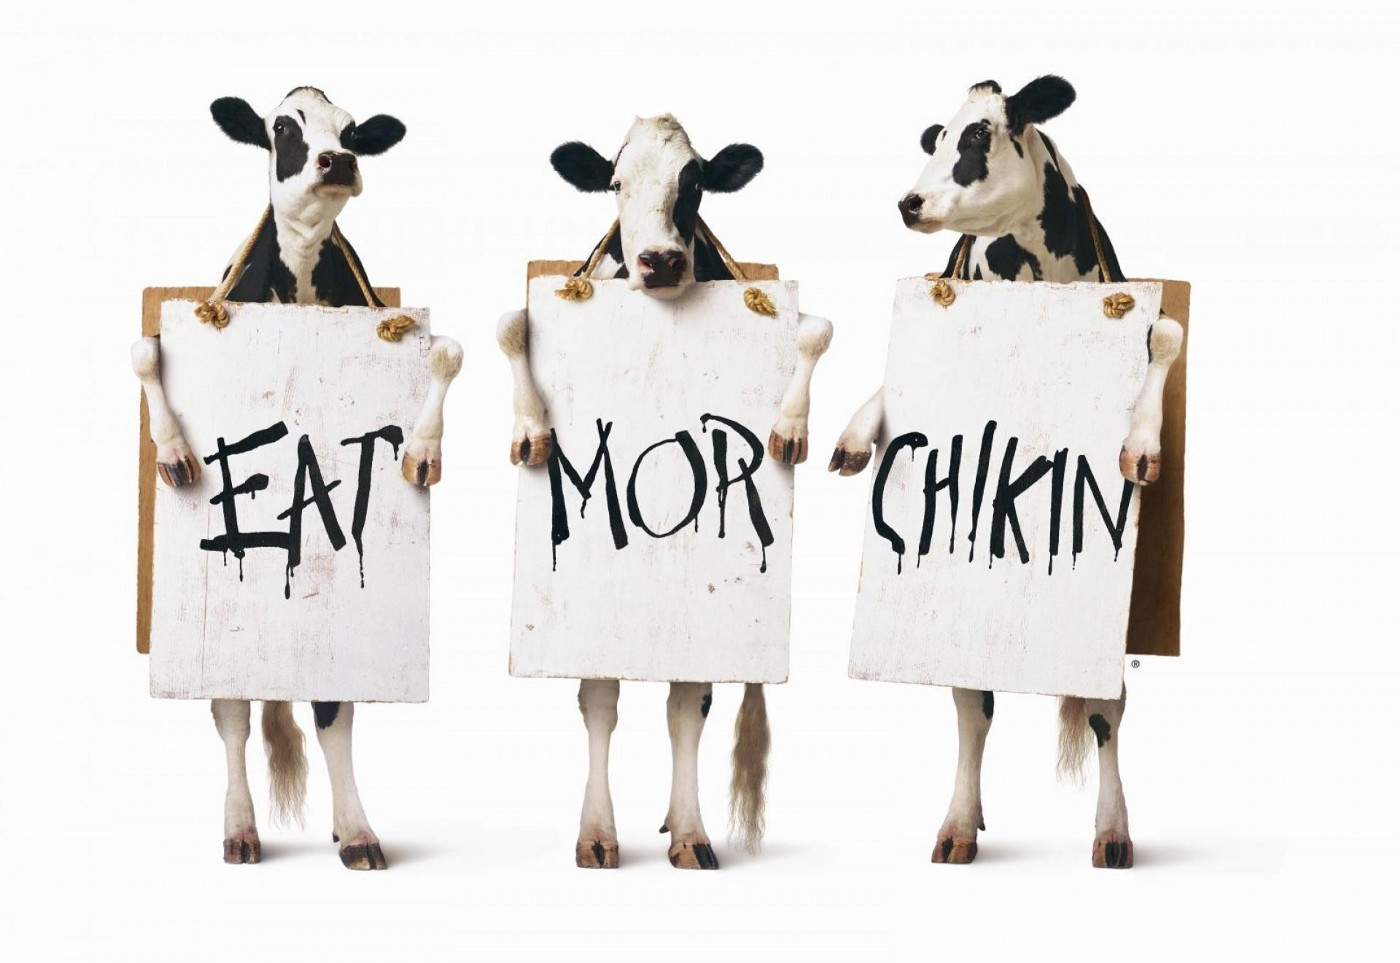 """A common Chick-fil-A marketing image, showing three cows on their hind legs, holding signs that say, from left to right, """"EAT"""", """"MOR"""", and """"CHIKIN""""."""